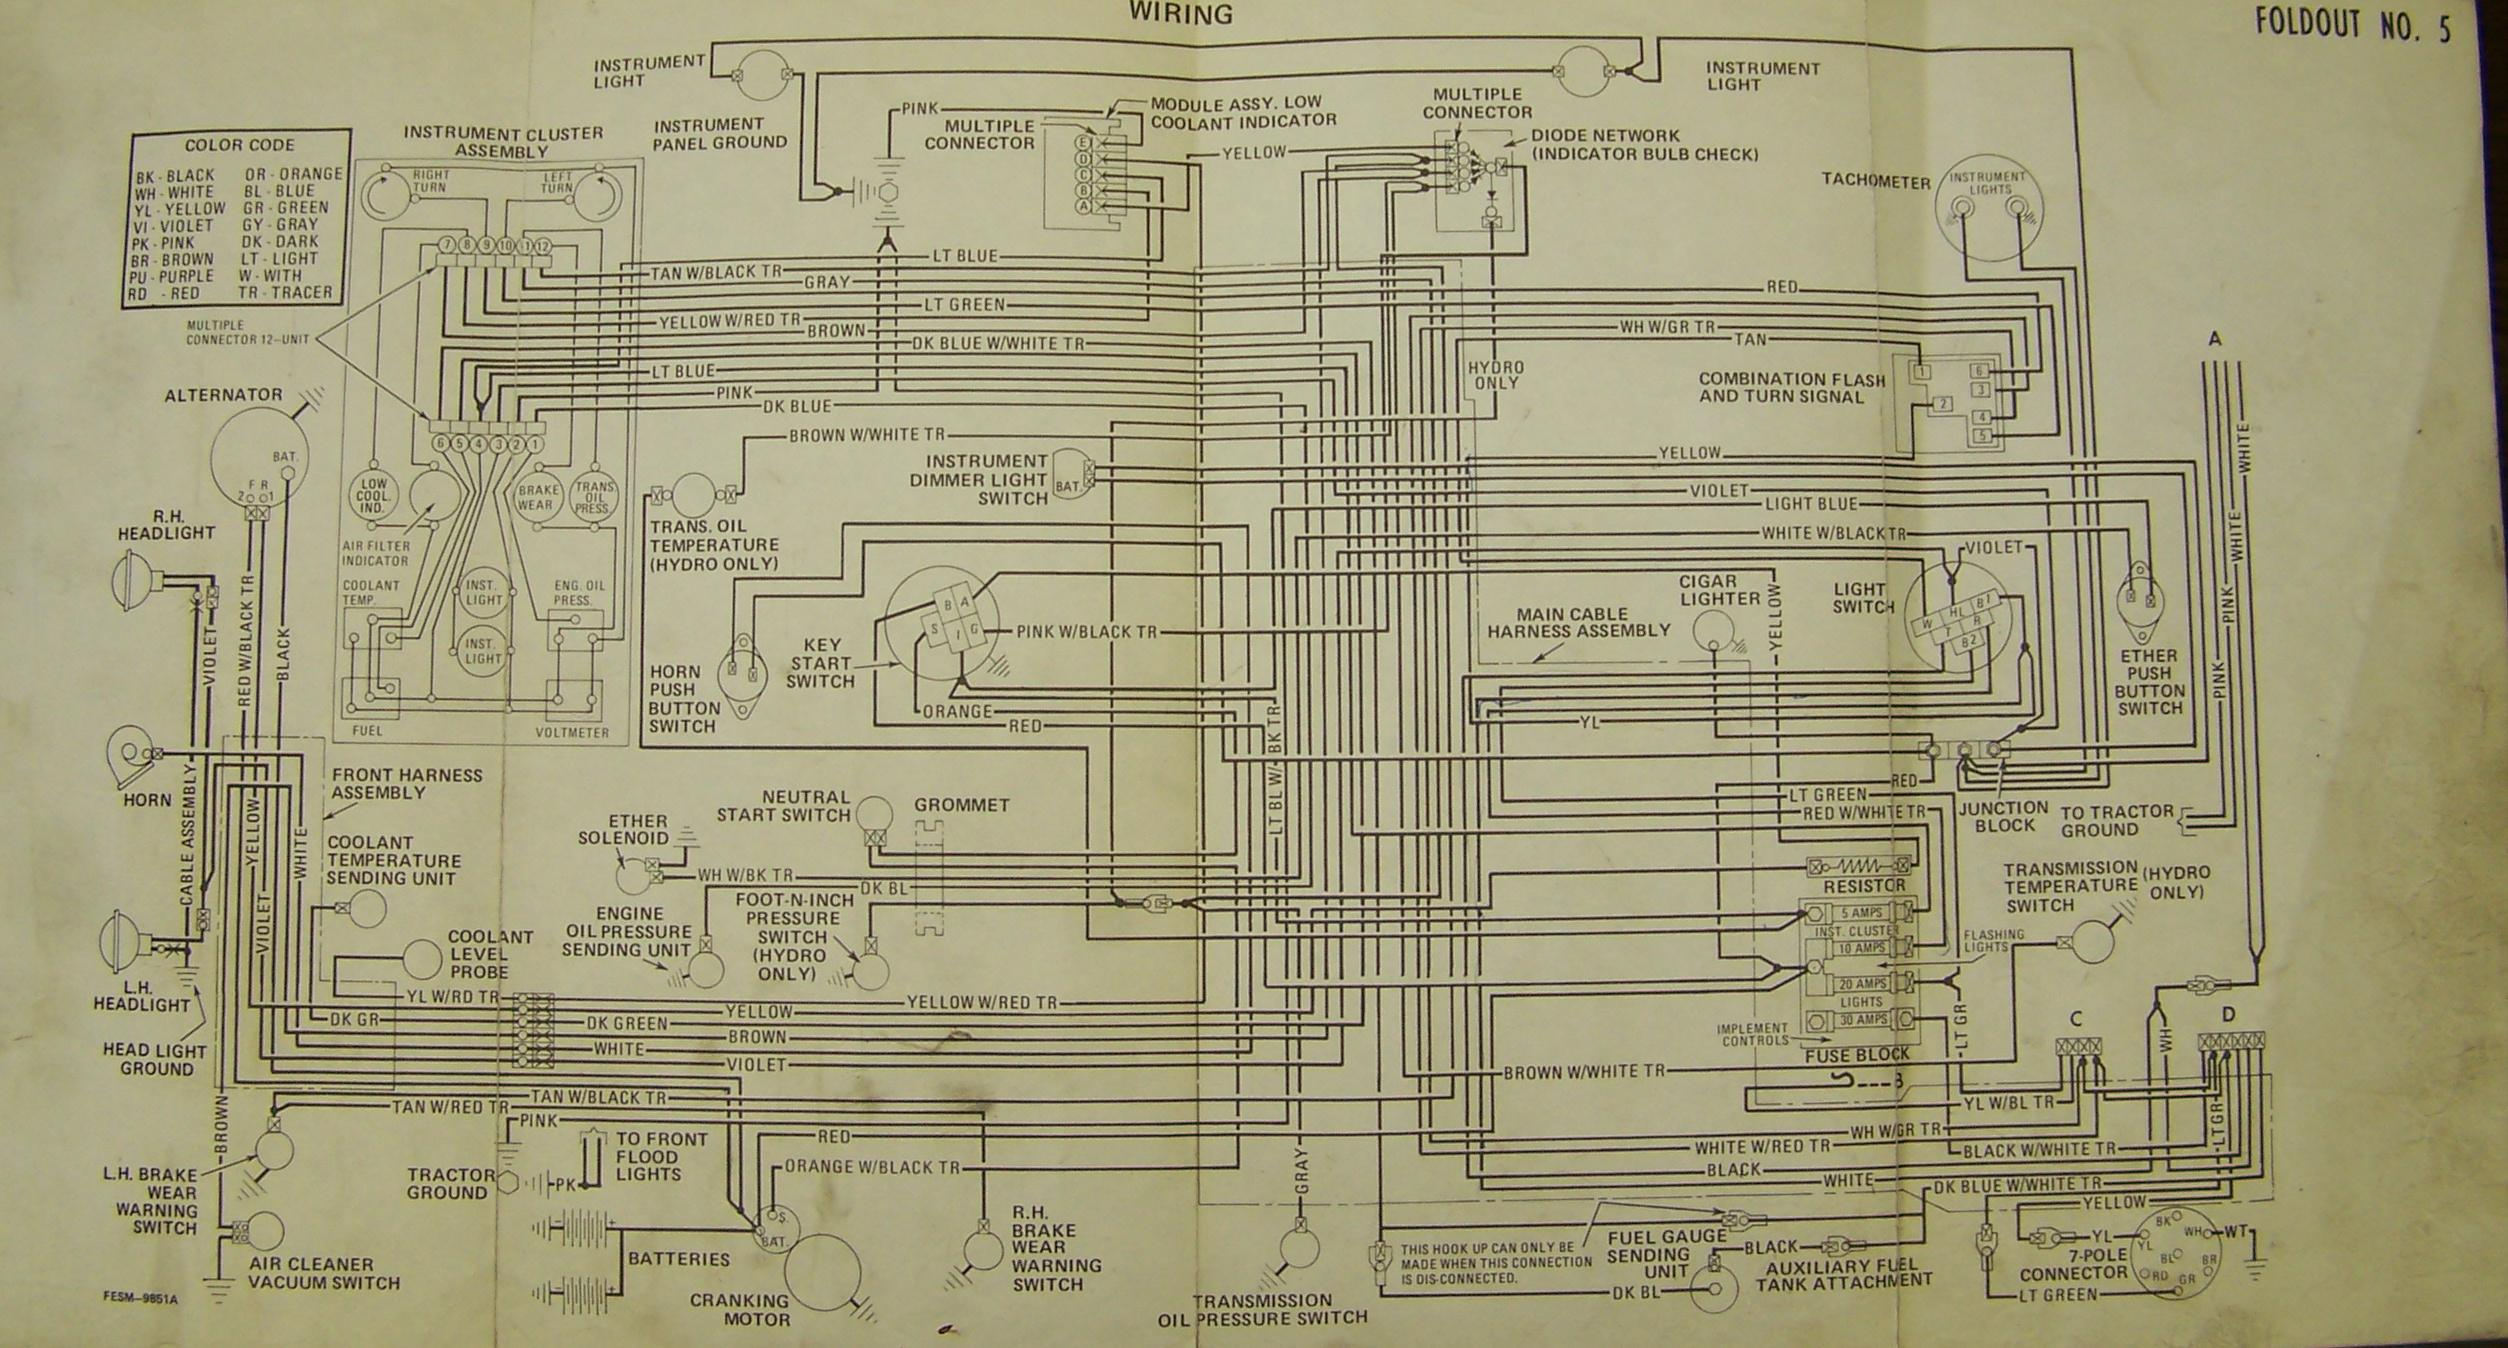 1486 Electrical - General IH - Red Power Magazine Community on white tractor power, nissan wiring diagram, hino wiring diagram, ford wiring diagram, white tractor steering, white tractor brochure, white tractor headlight switch, hesston wiring diagram, oliver wiring diagram, alfa romeo wiring diagram, western star wiring diagram, white tractor tires,